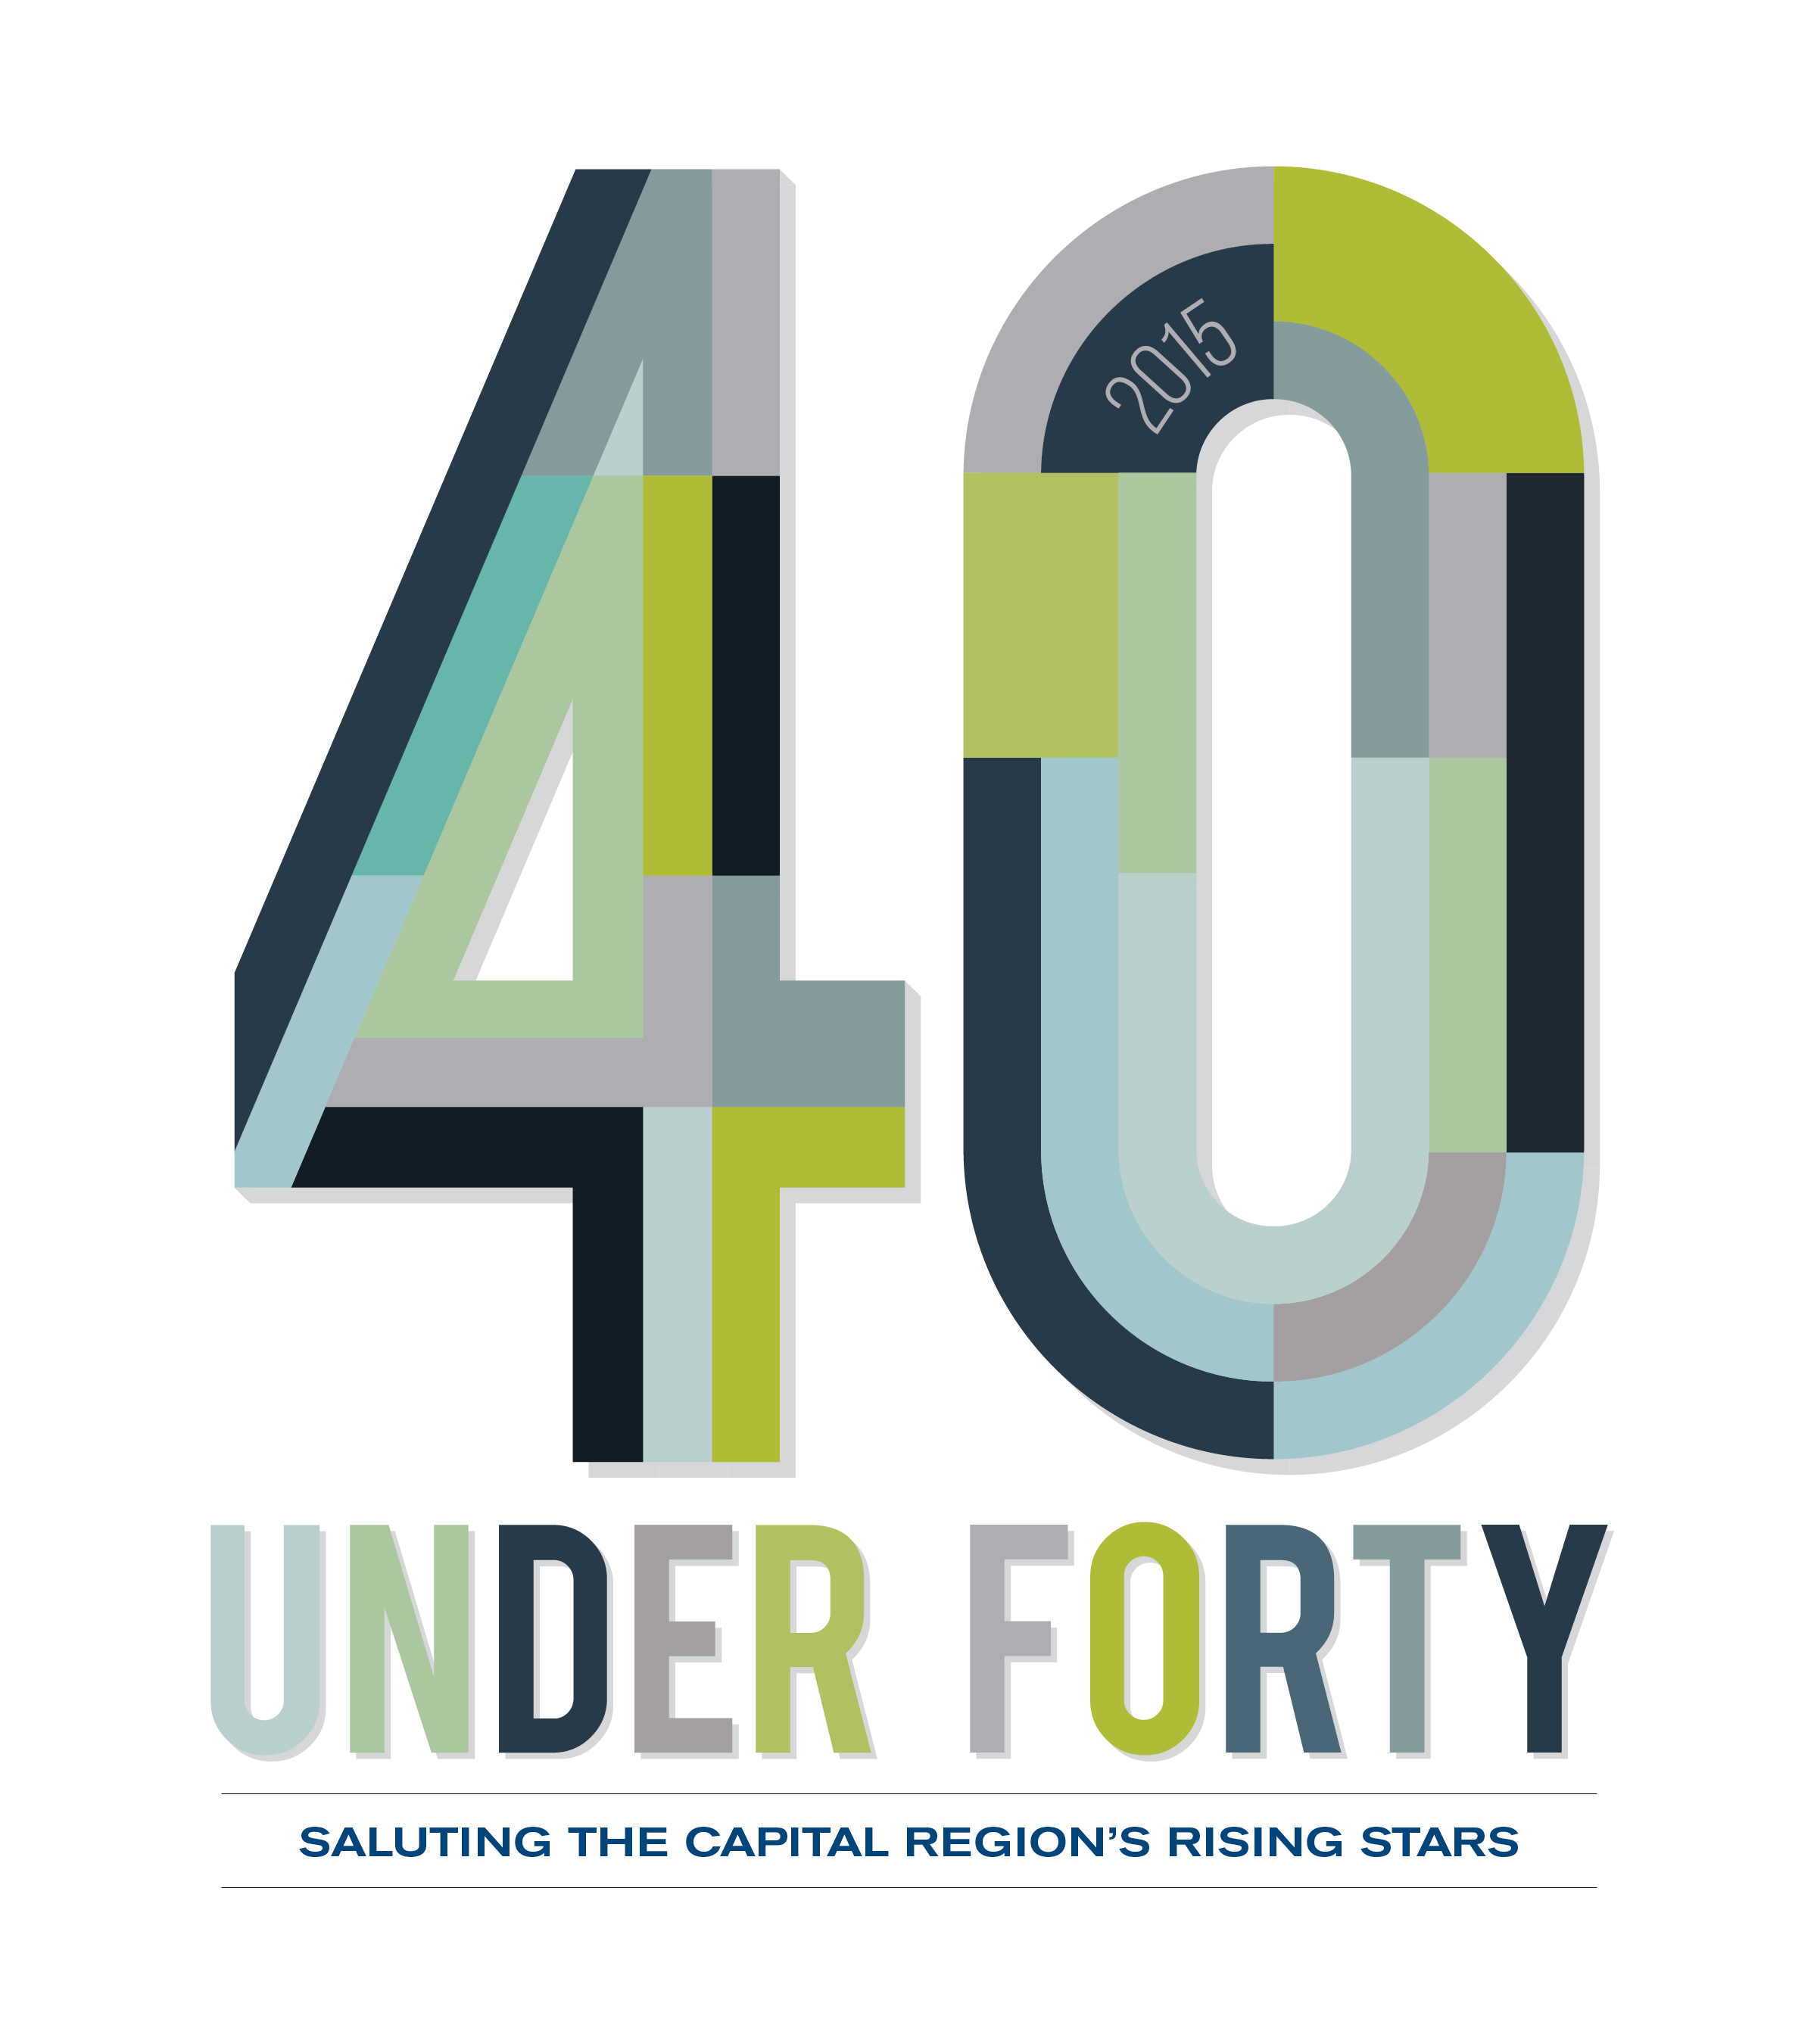 40 Under 40 winners: Meet the architects